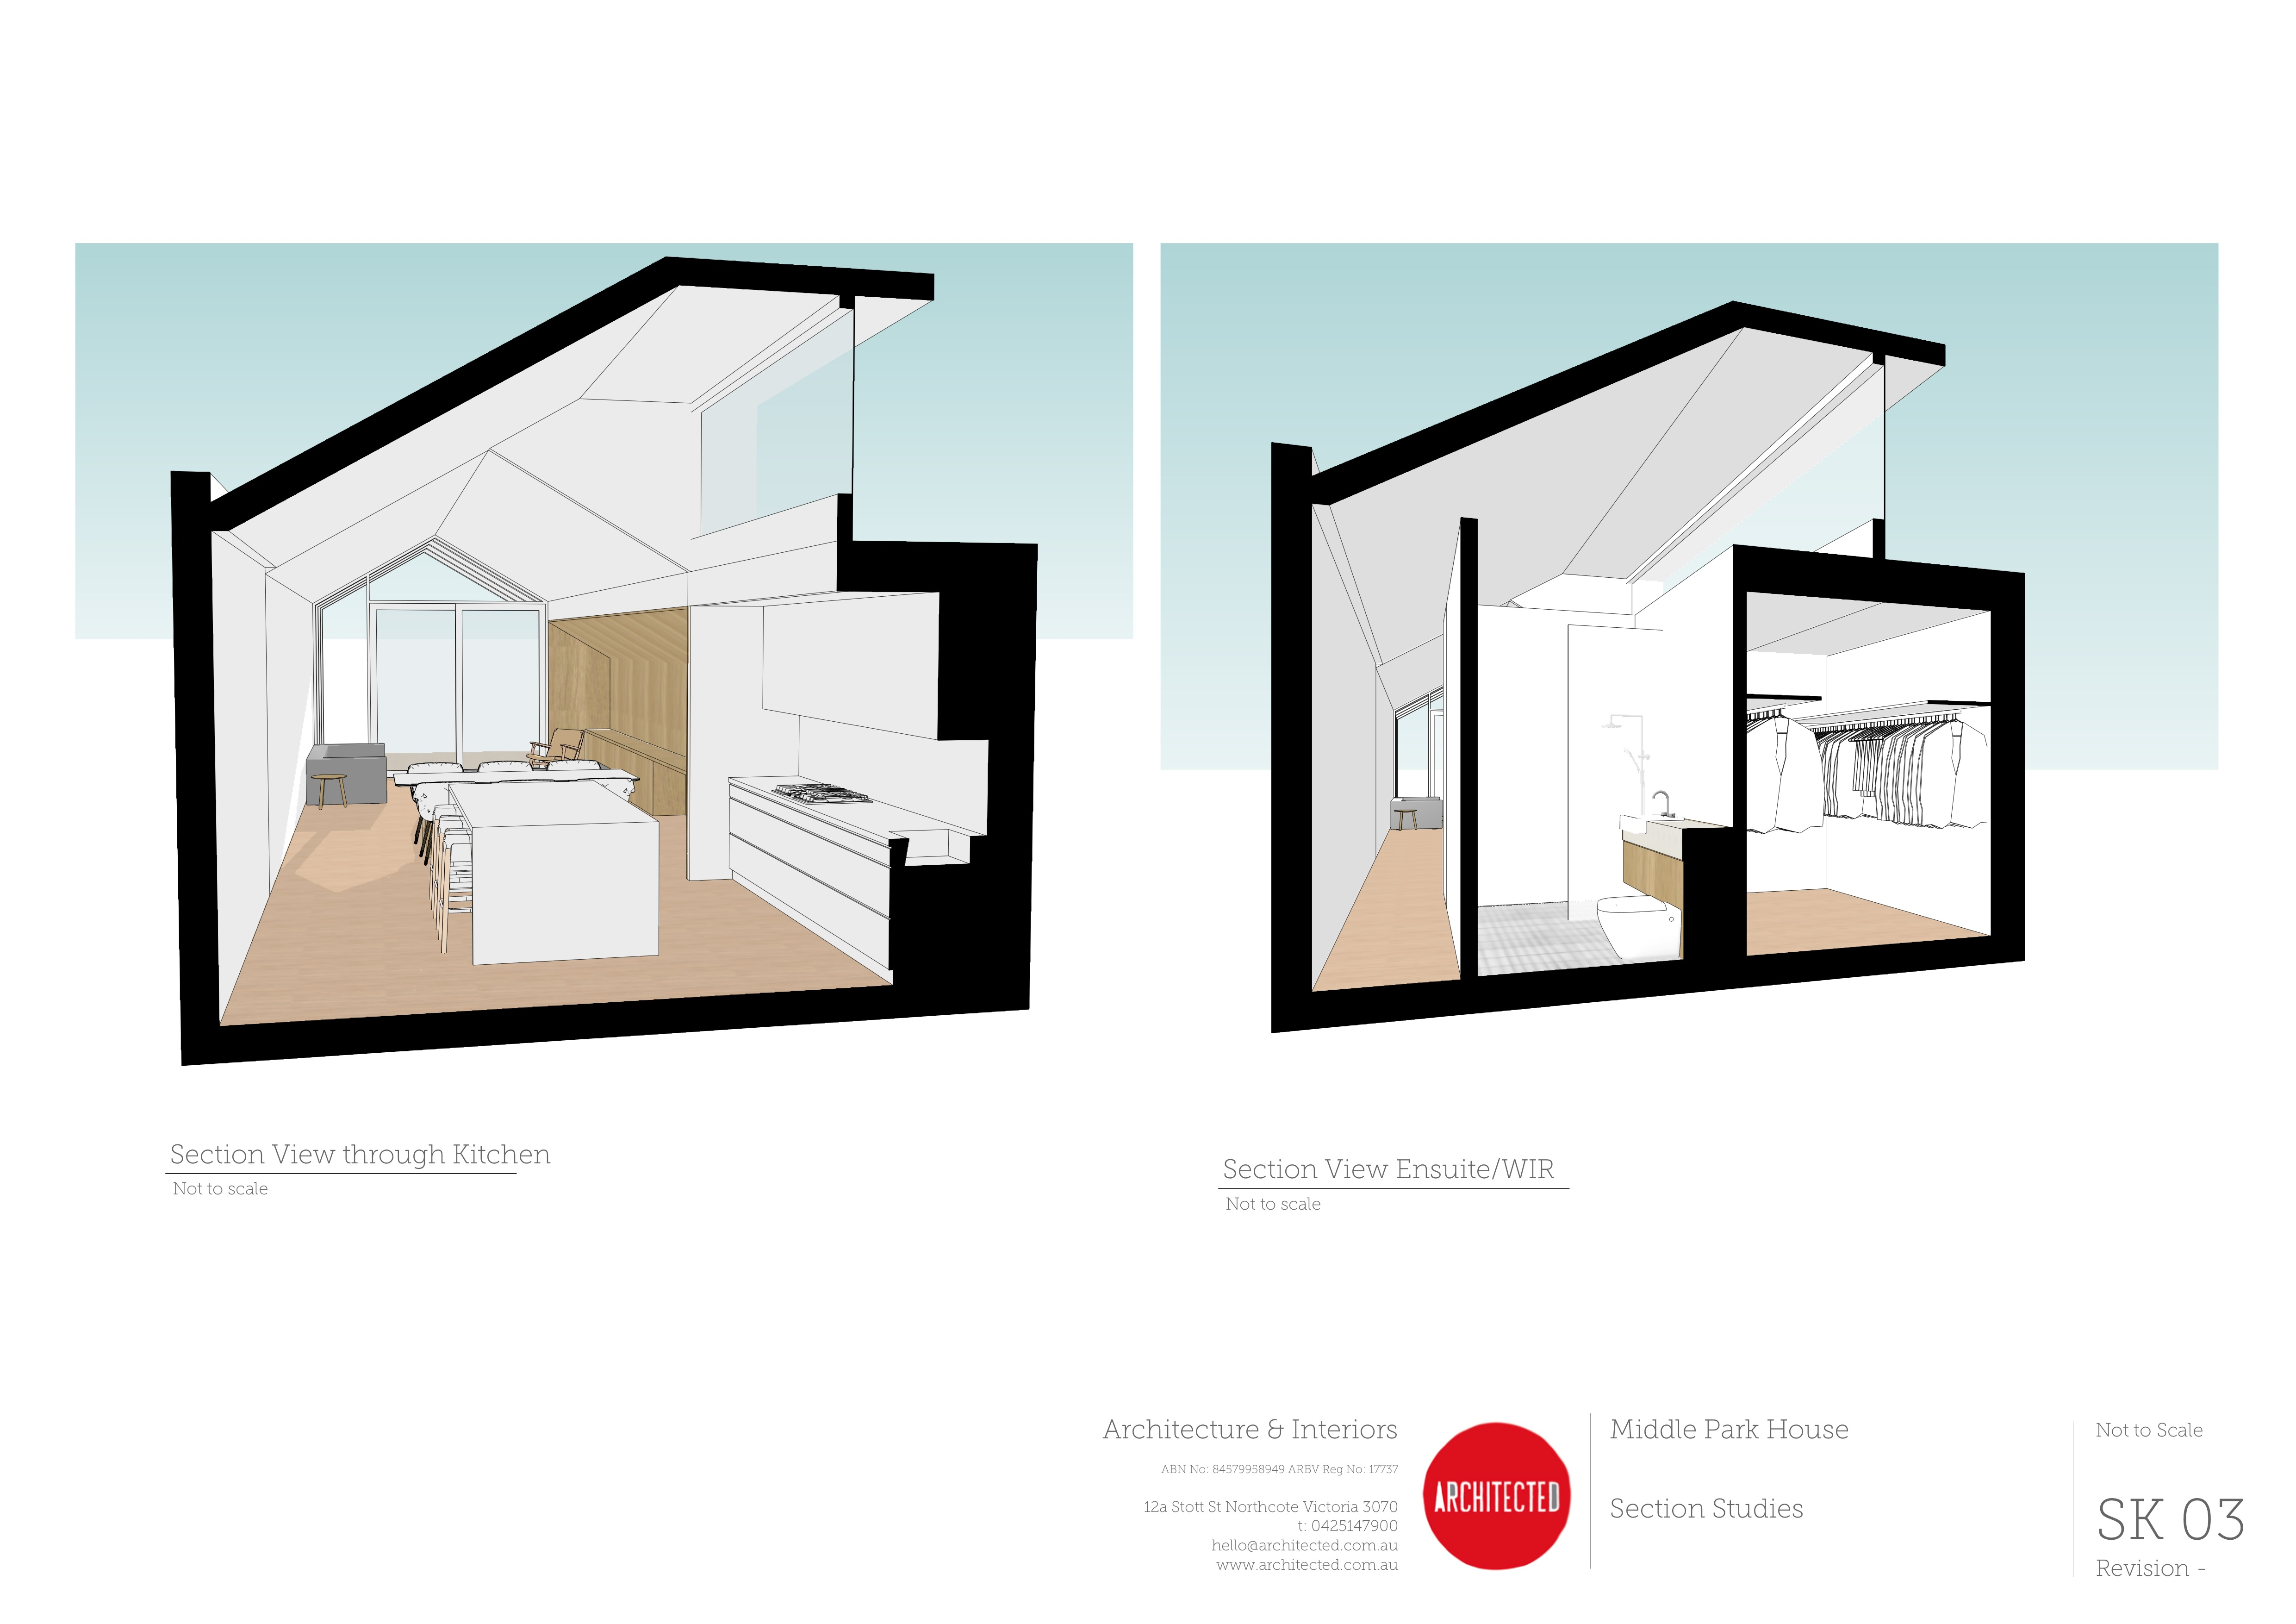 140903_CONCEPT_NAME REMOVED_P3_3.jpg